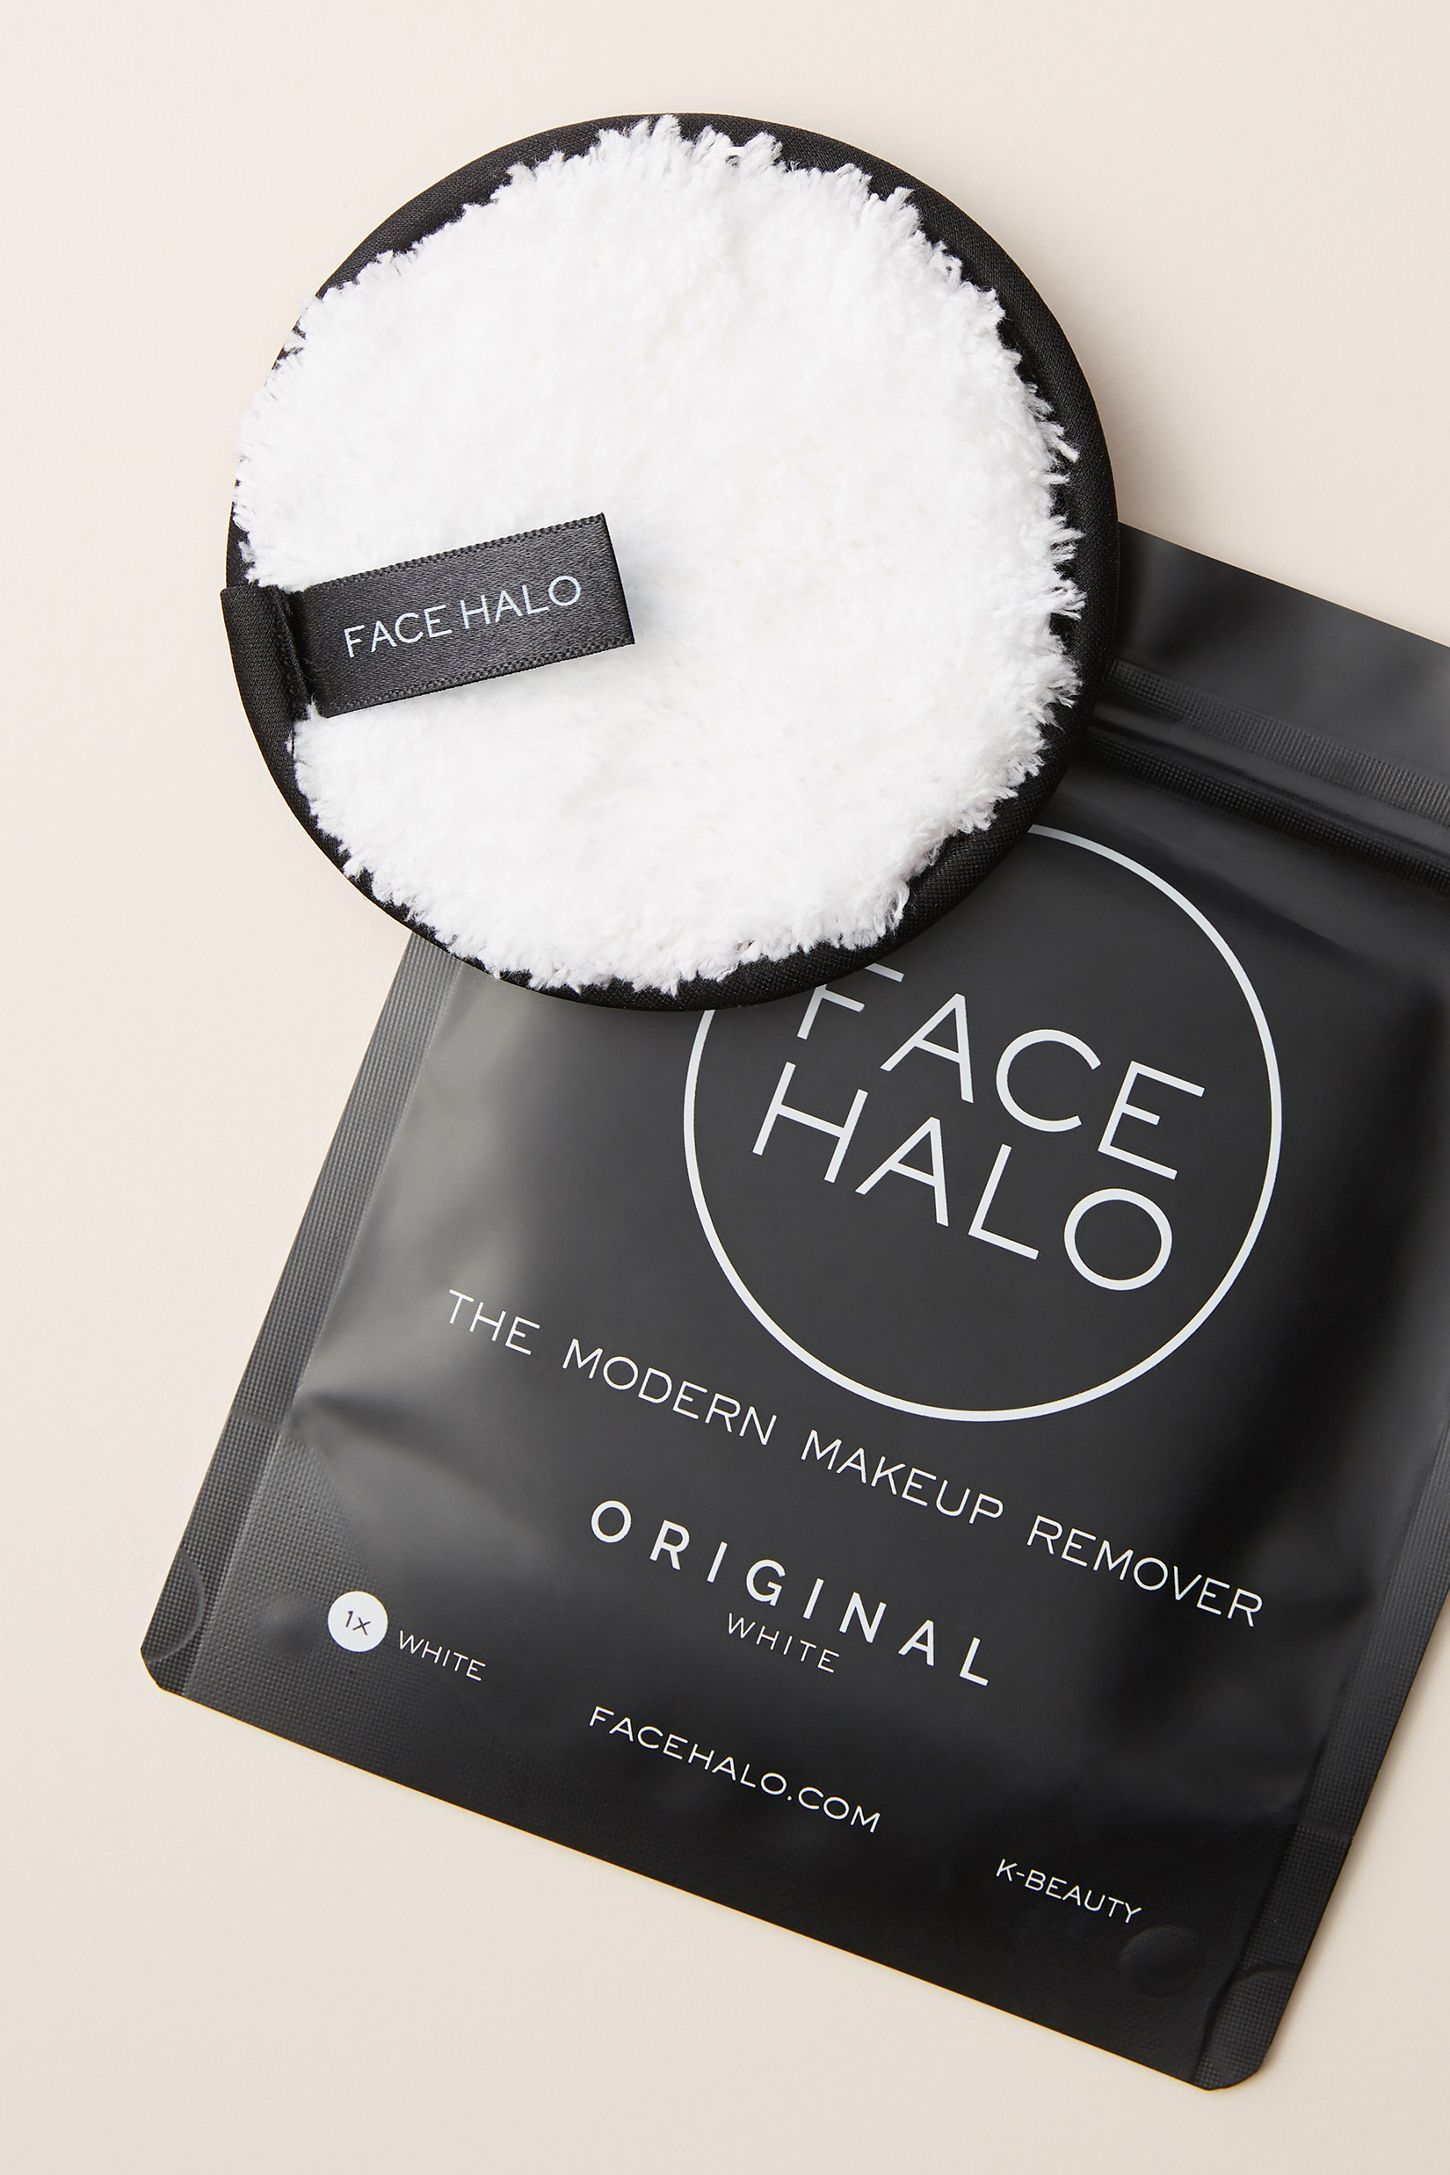 Face Halo Original Makeup Remover in 2020 Makeup remover